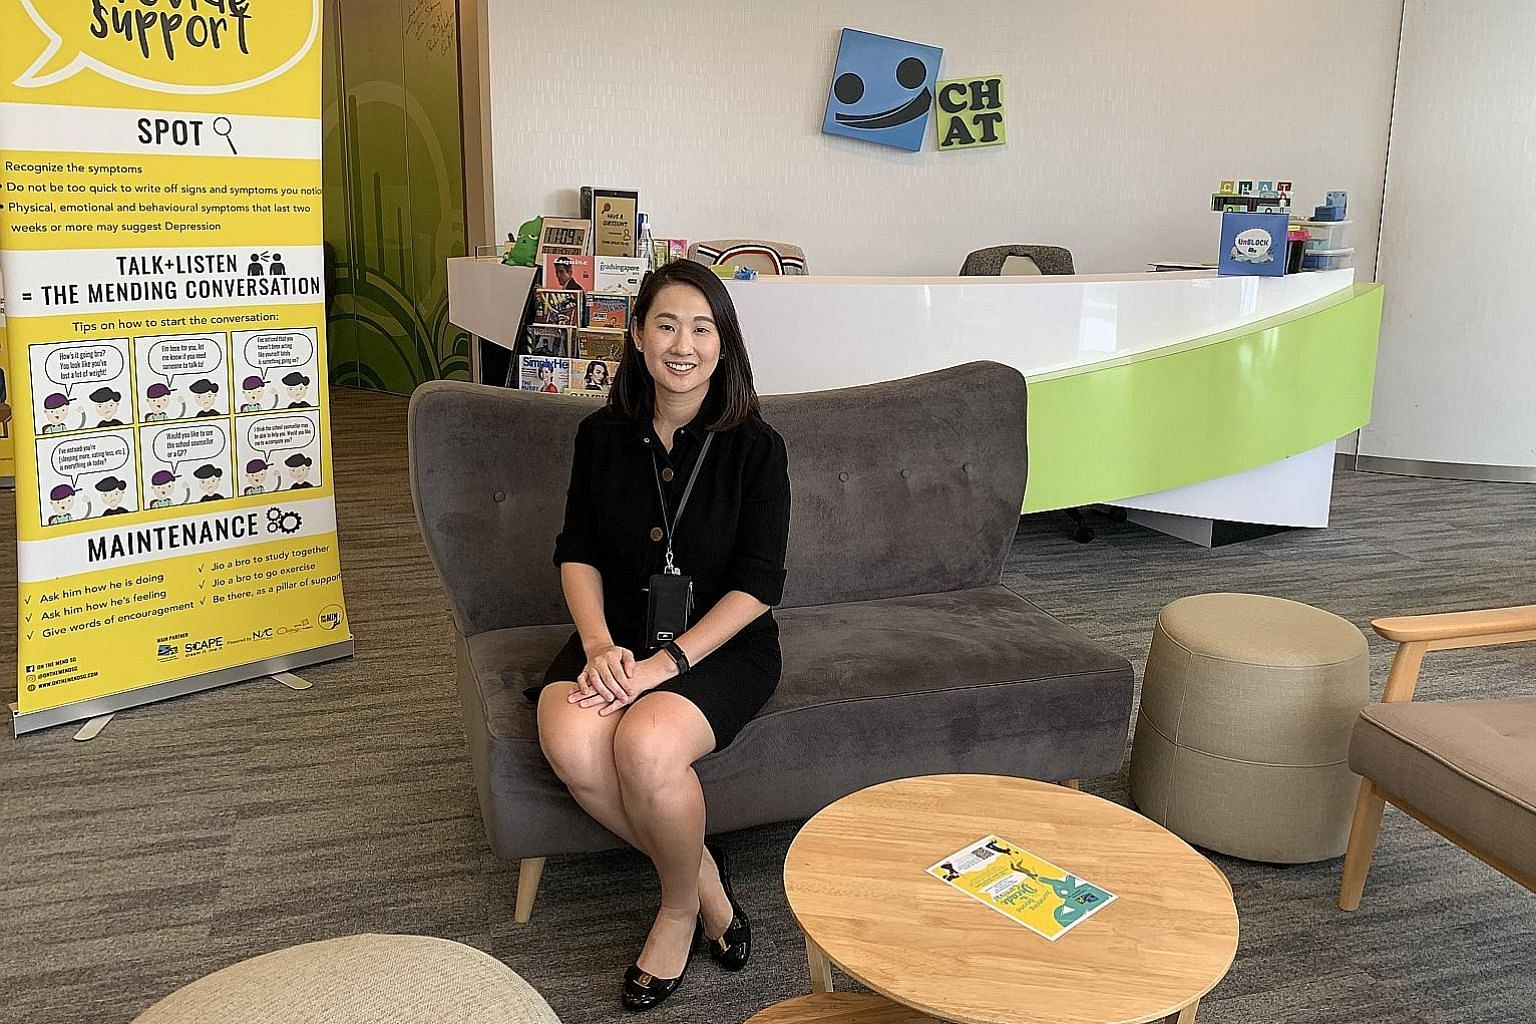 Dr Charmaine Tang, Chat's deputy programme director and a consultant at the Institute of Mental Health, at the youth outreach arm's centre at *Scape. Around 1,700 young people approached Chat - short for Community Health Assessment Team - for help la